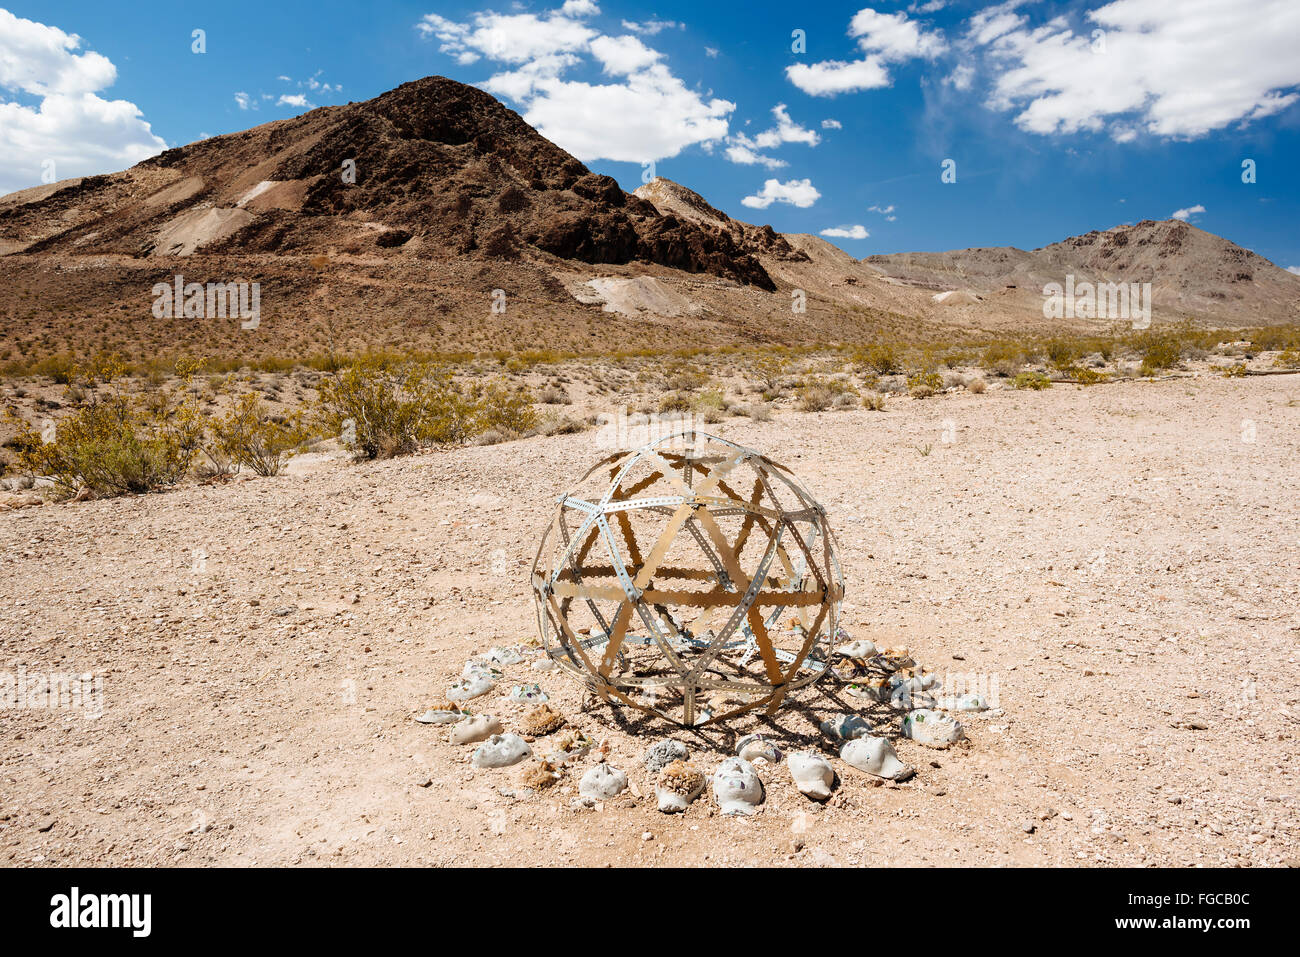 A sculpture in Goldwell Open Air Museum in Rhyolite, Nevada - Stock Image